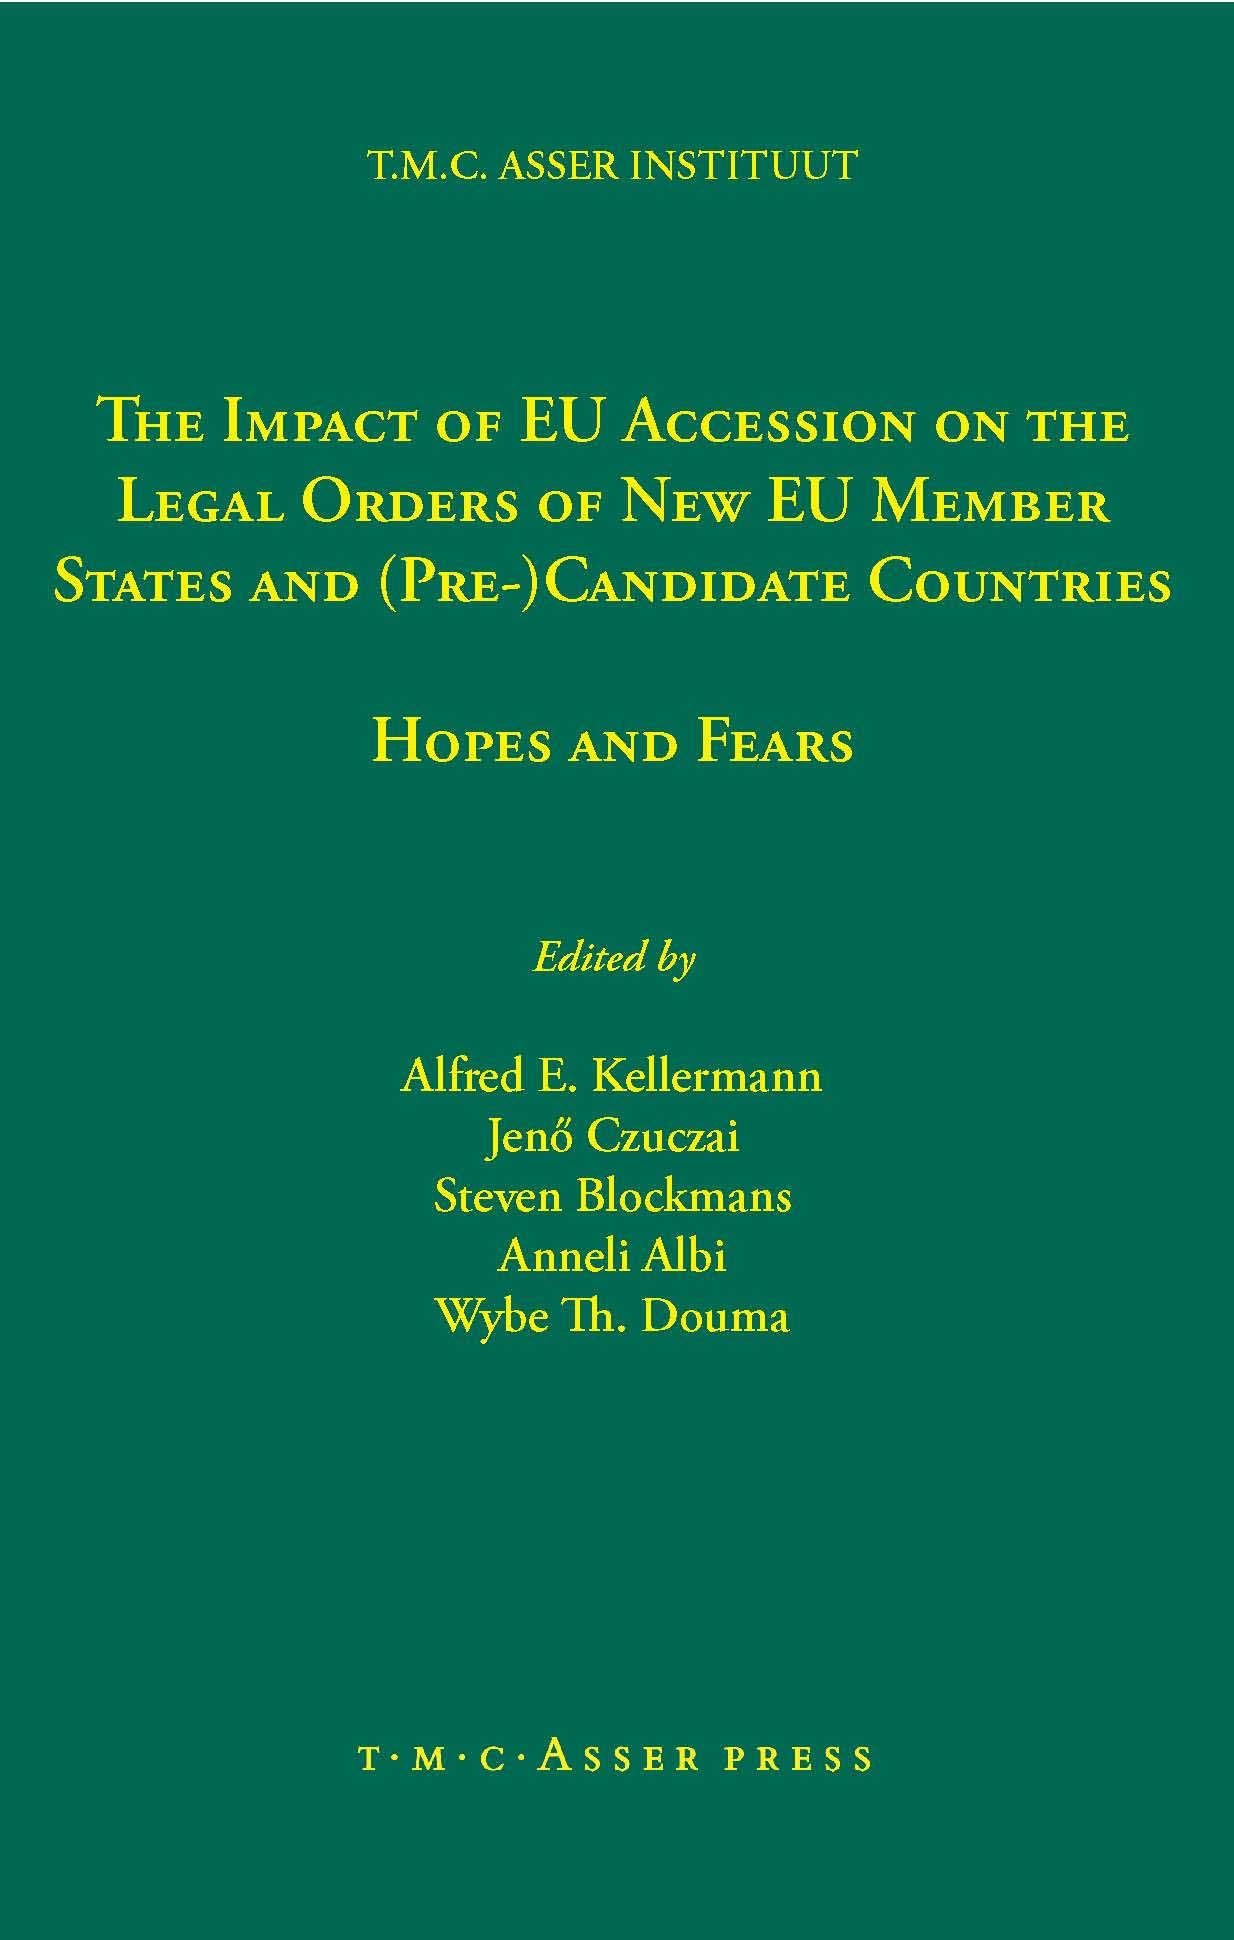 The Impact of EU Accession on the Legal Orders of New EU Member States and (Pre-) Candidate Countries - Hopes and Fears